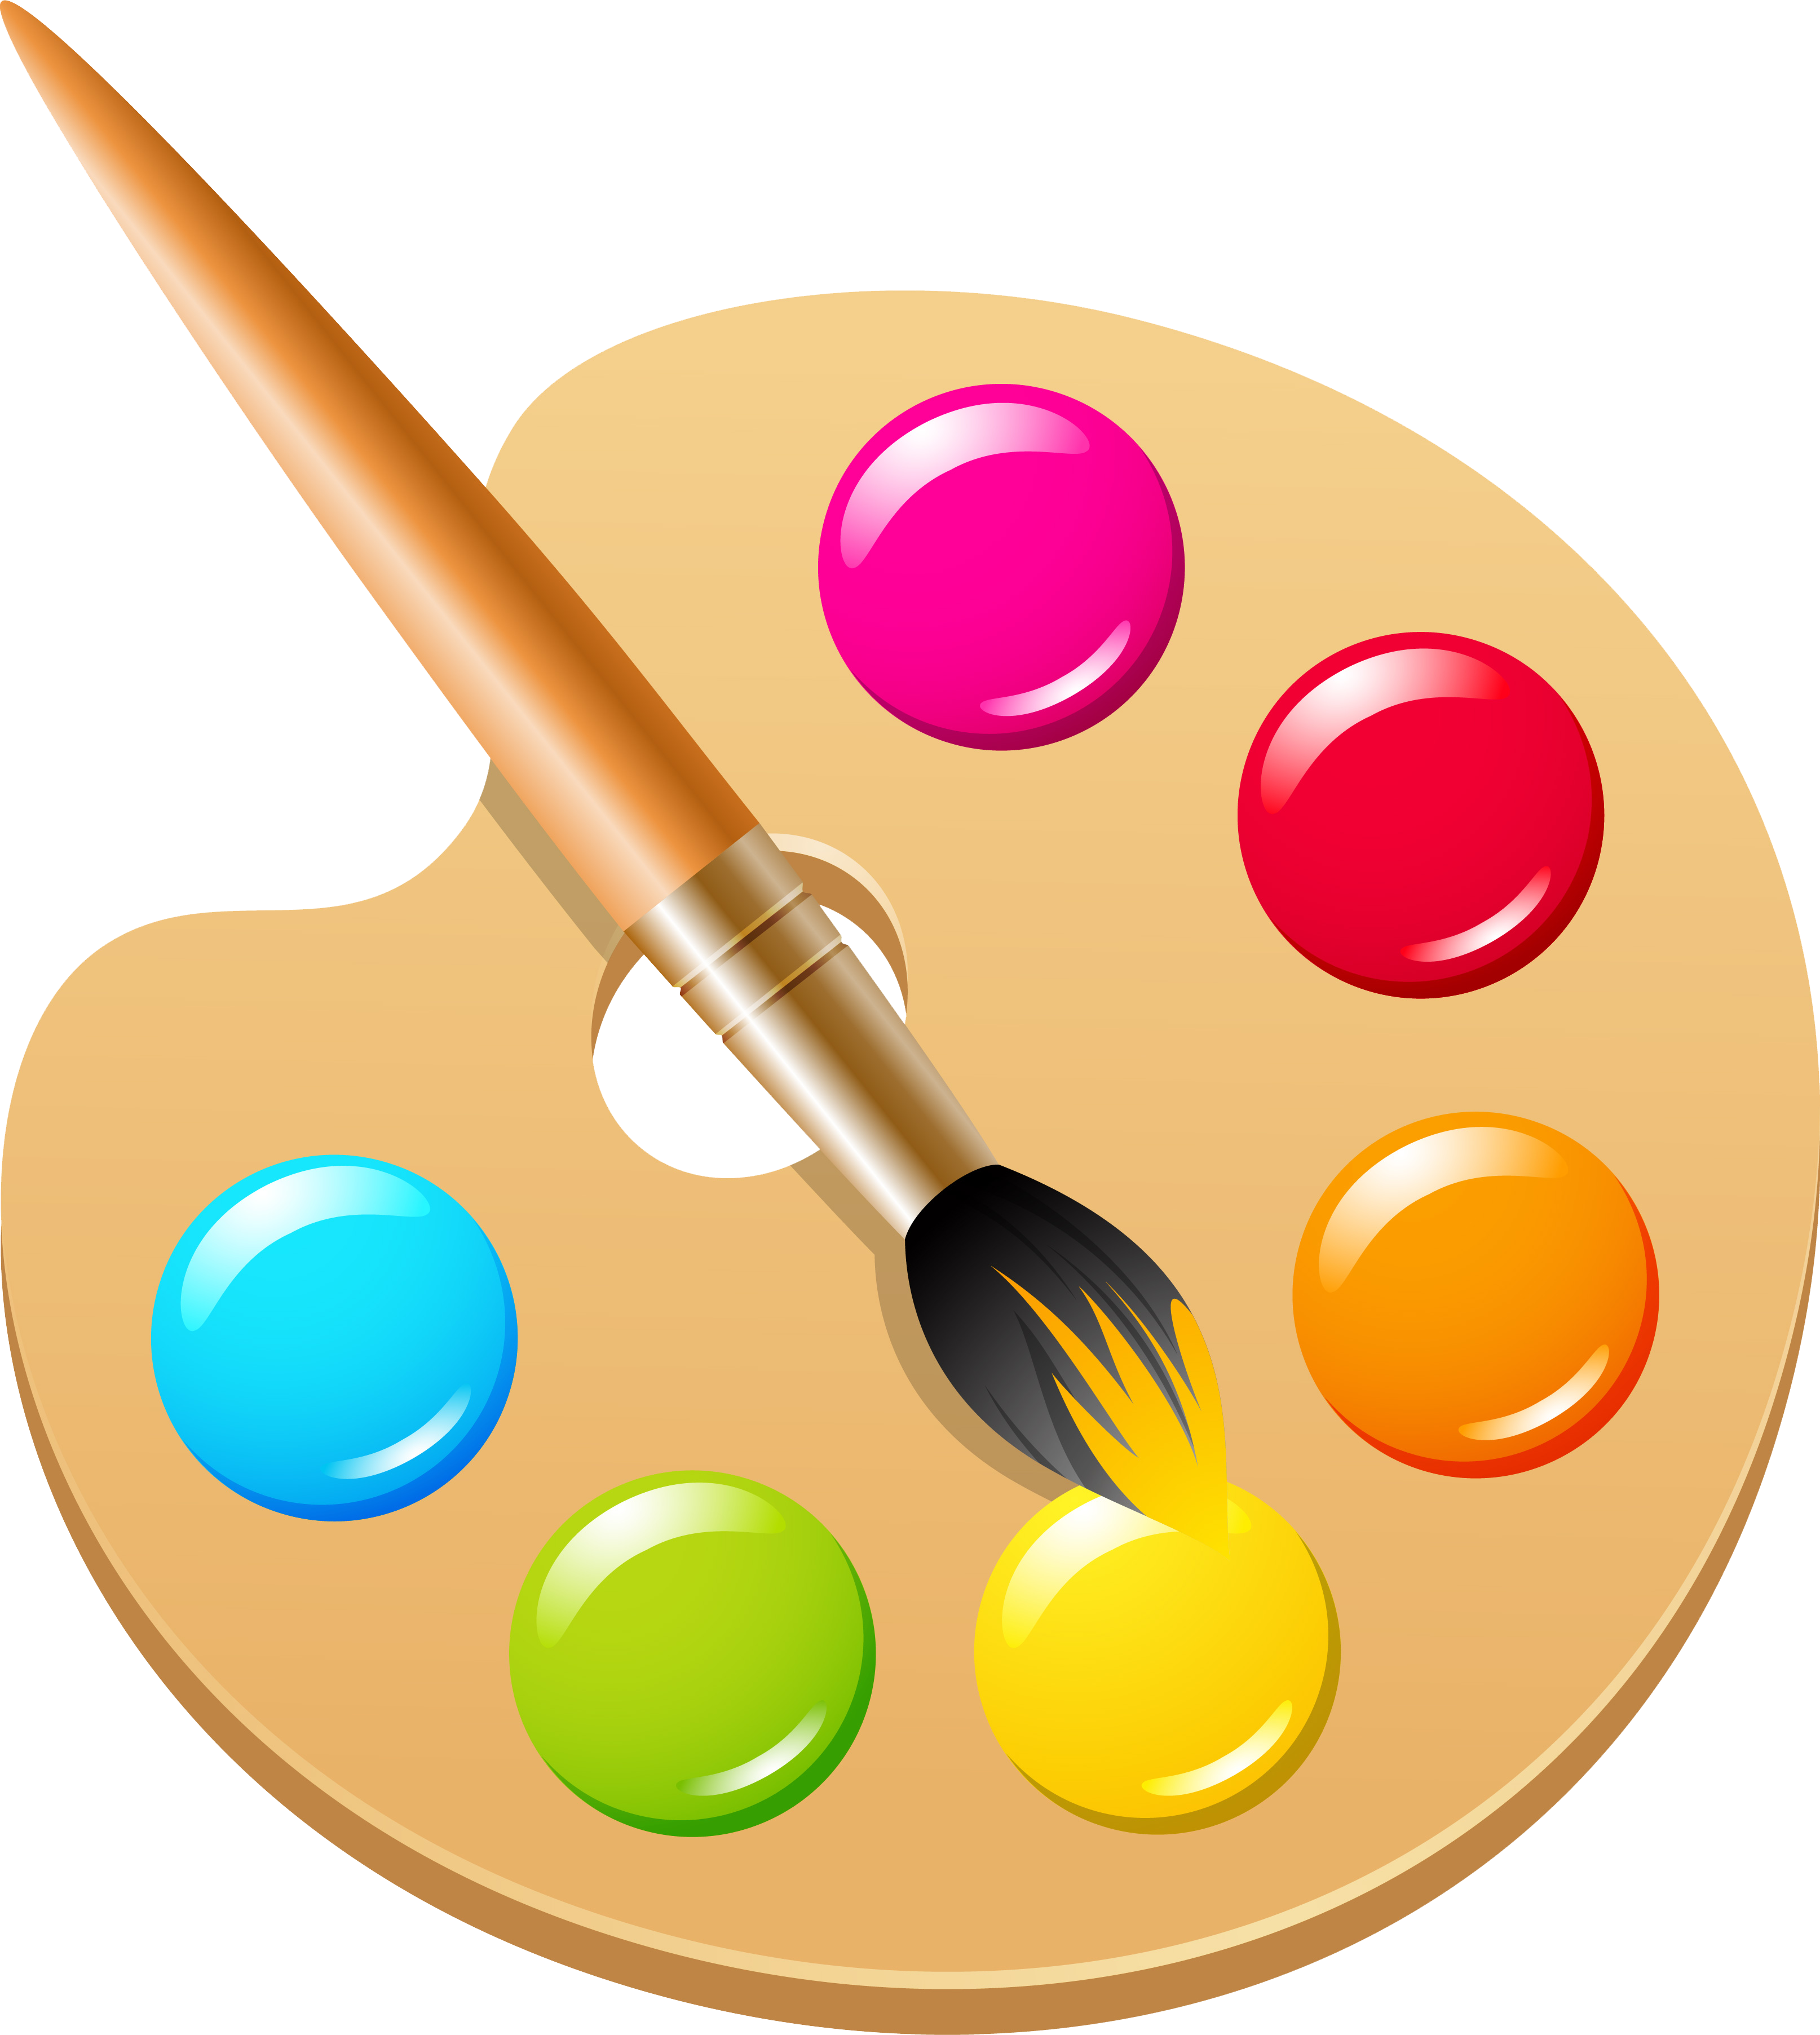 Paintbrush clipart painting material. Pigment color ink brush